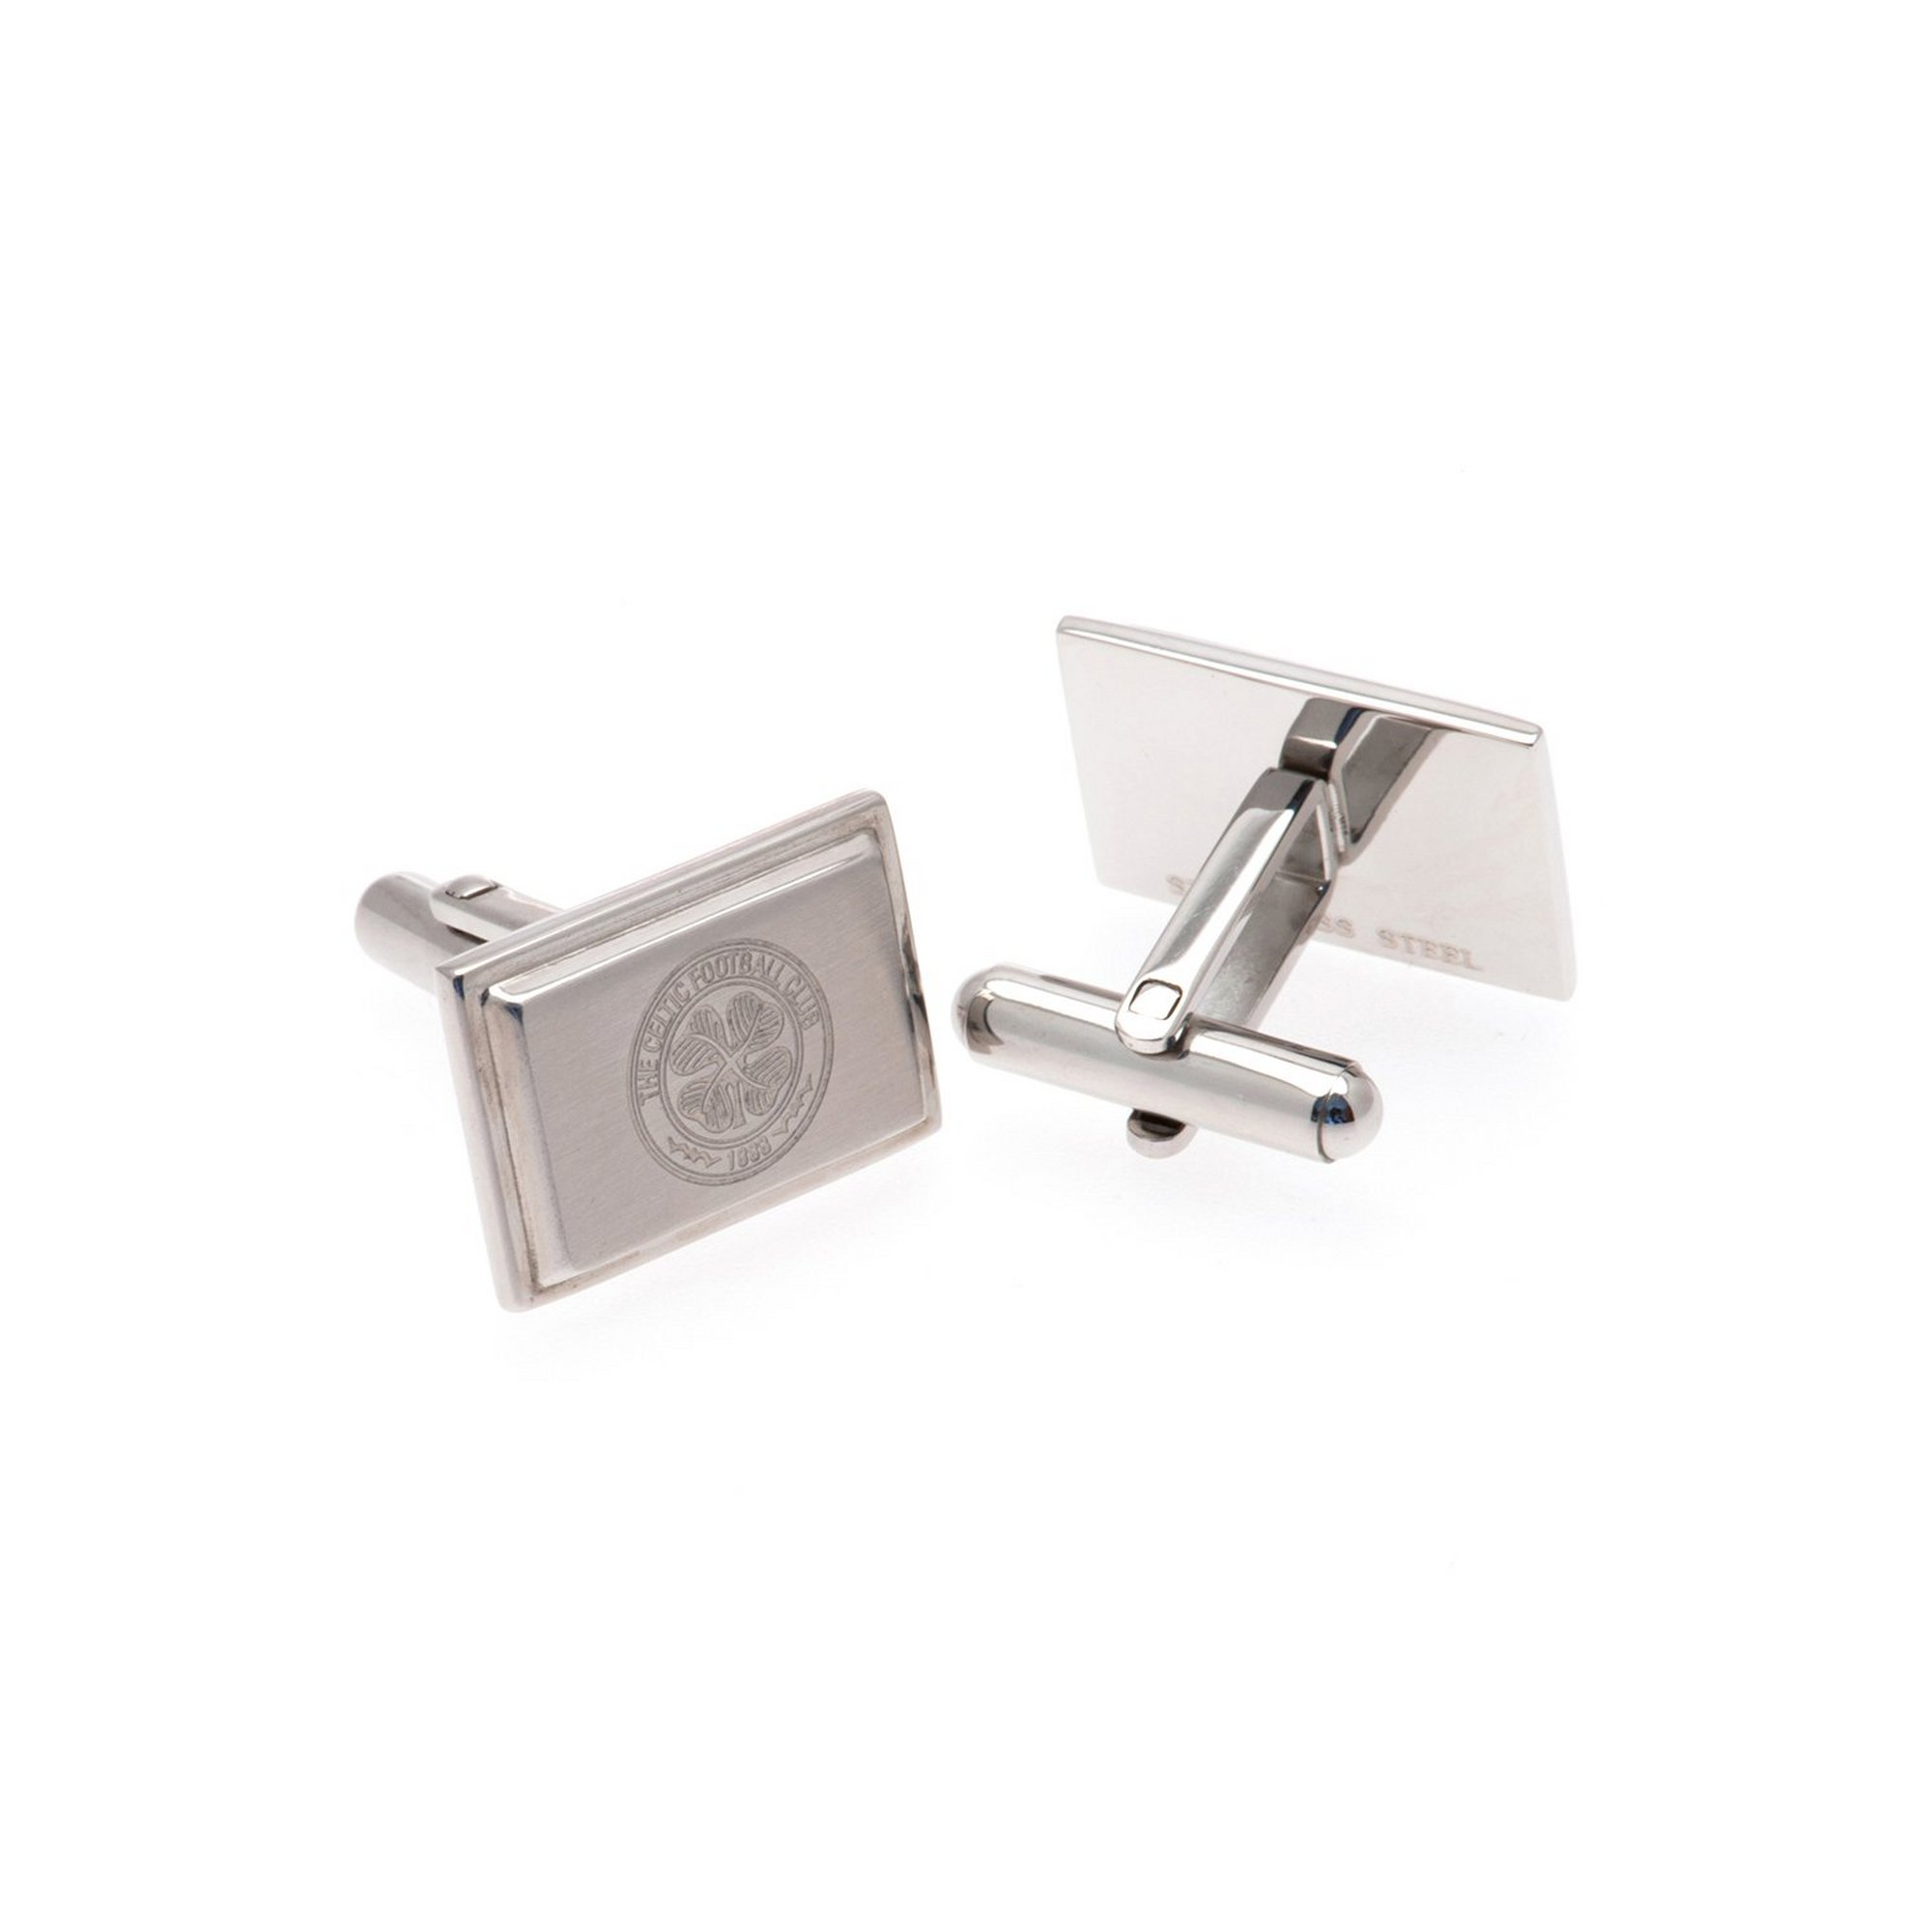 Image of Celtic FC Stainless Steel Crest Cufflinks